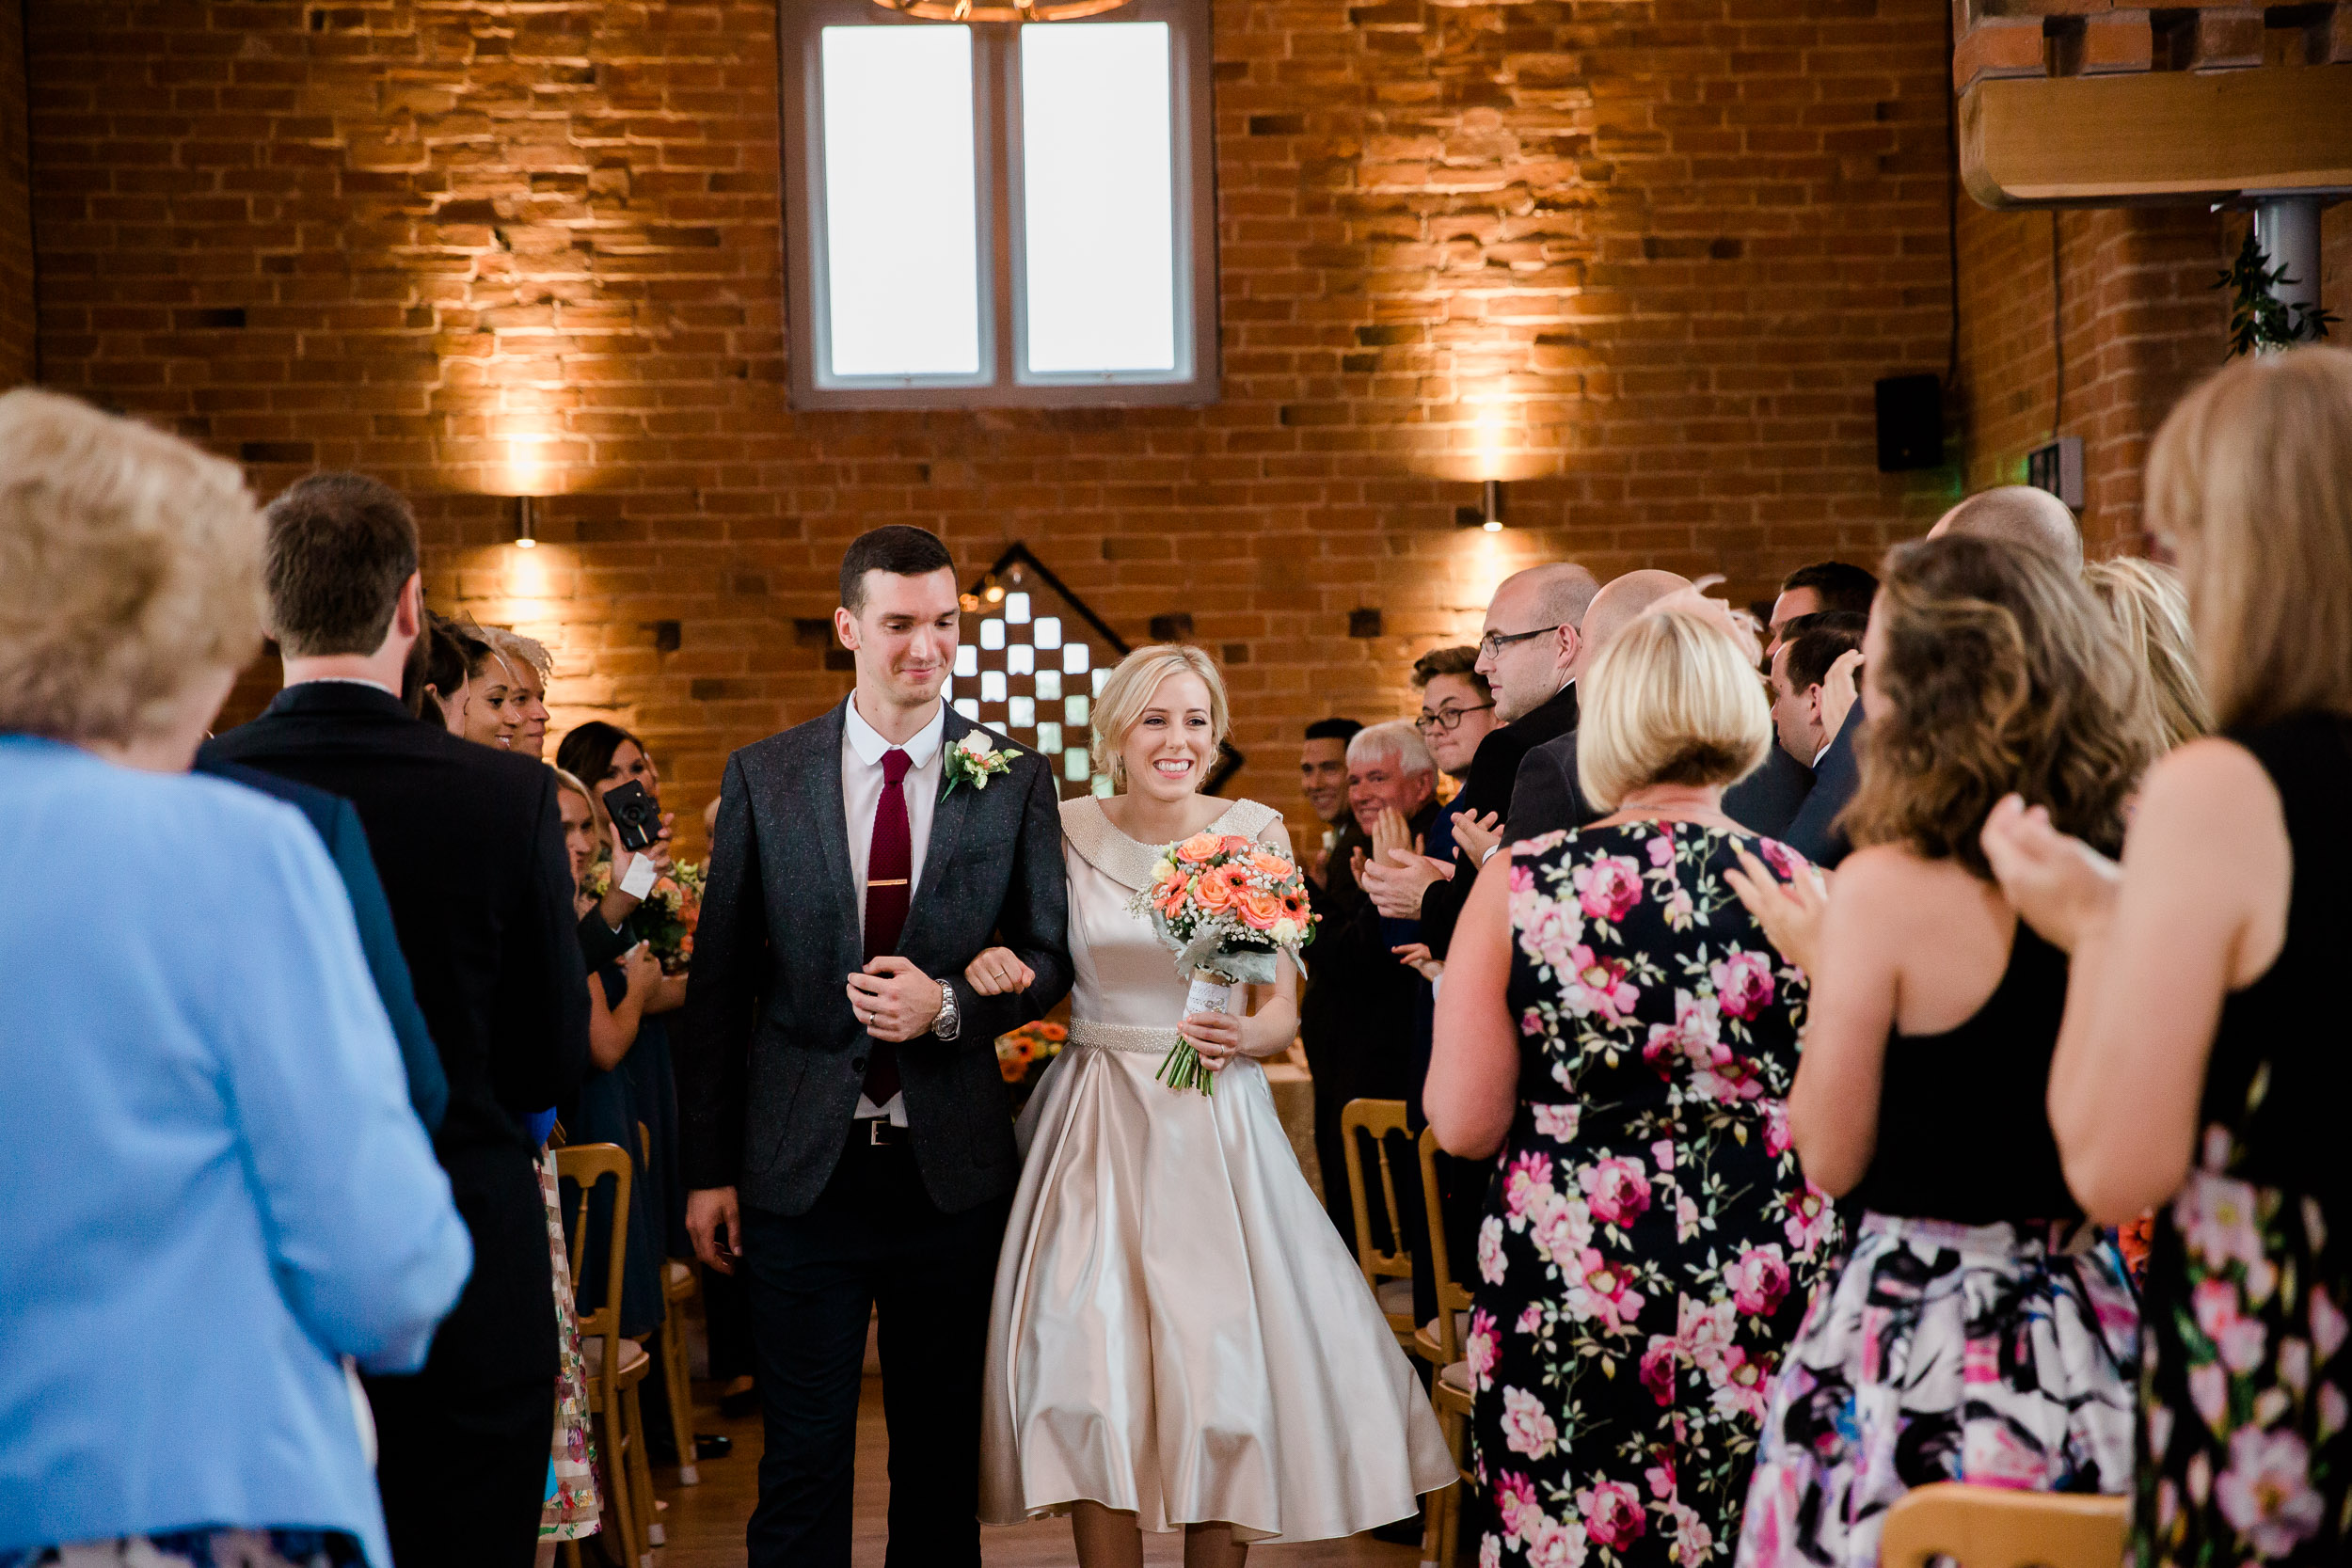 Swallows Nest Barn Chic & Rustic Wedding-68